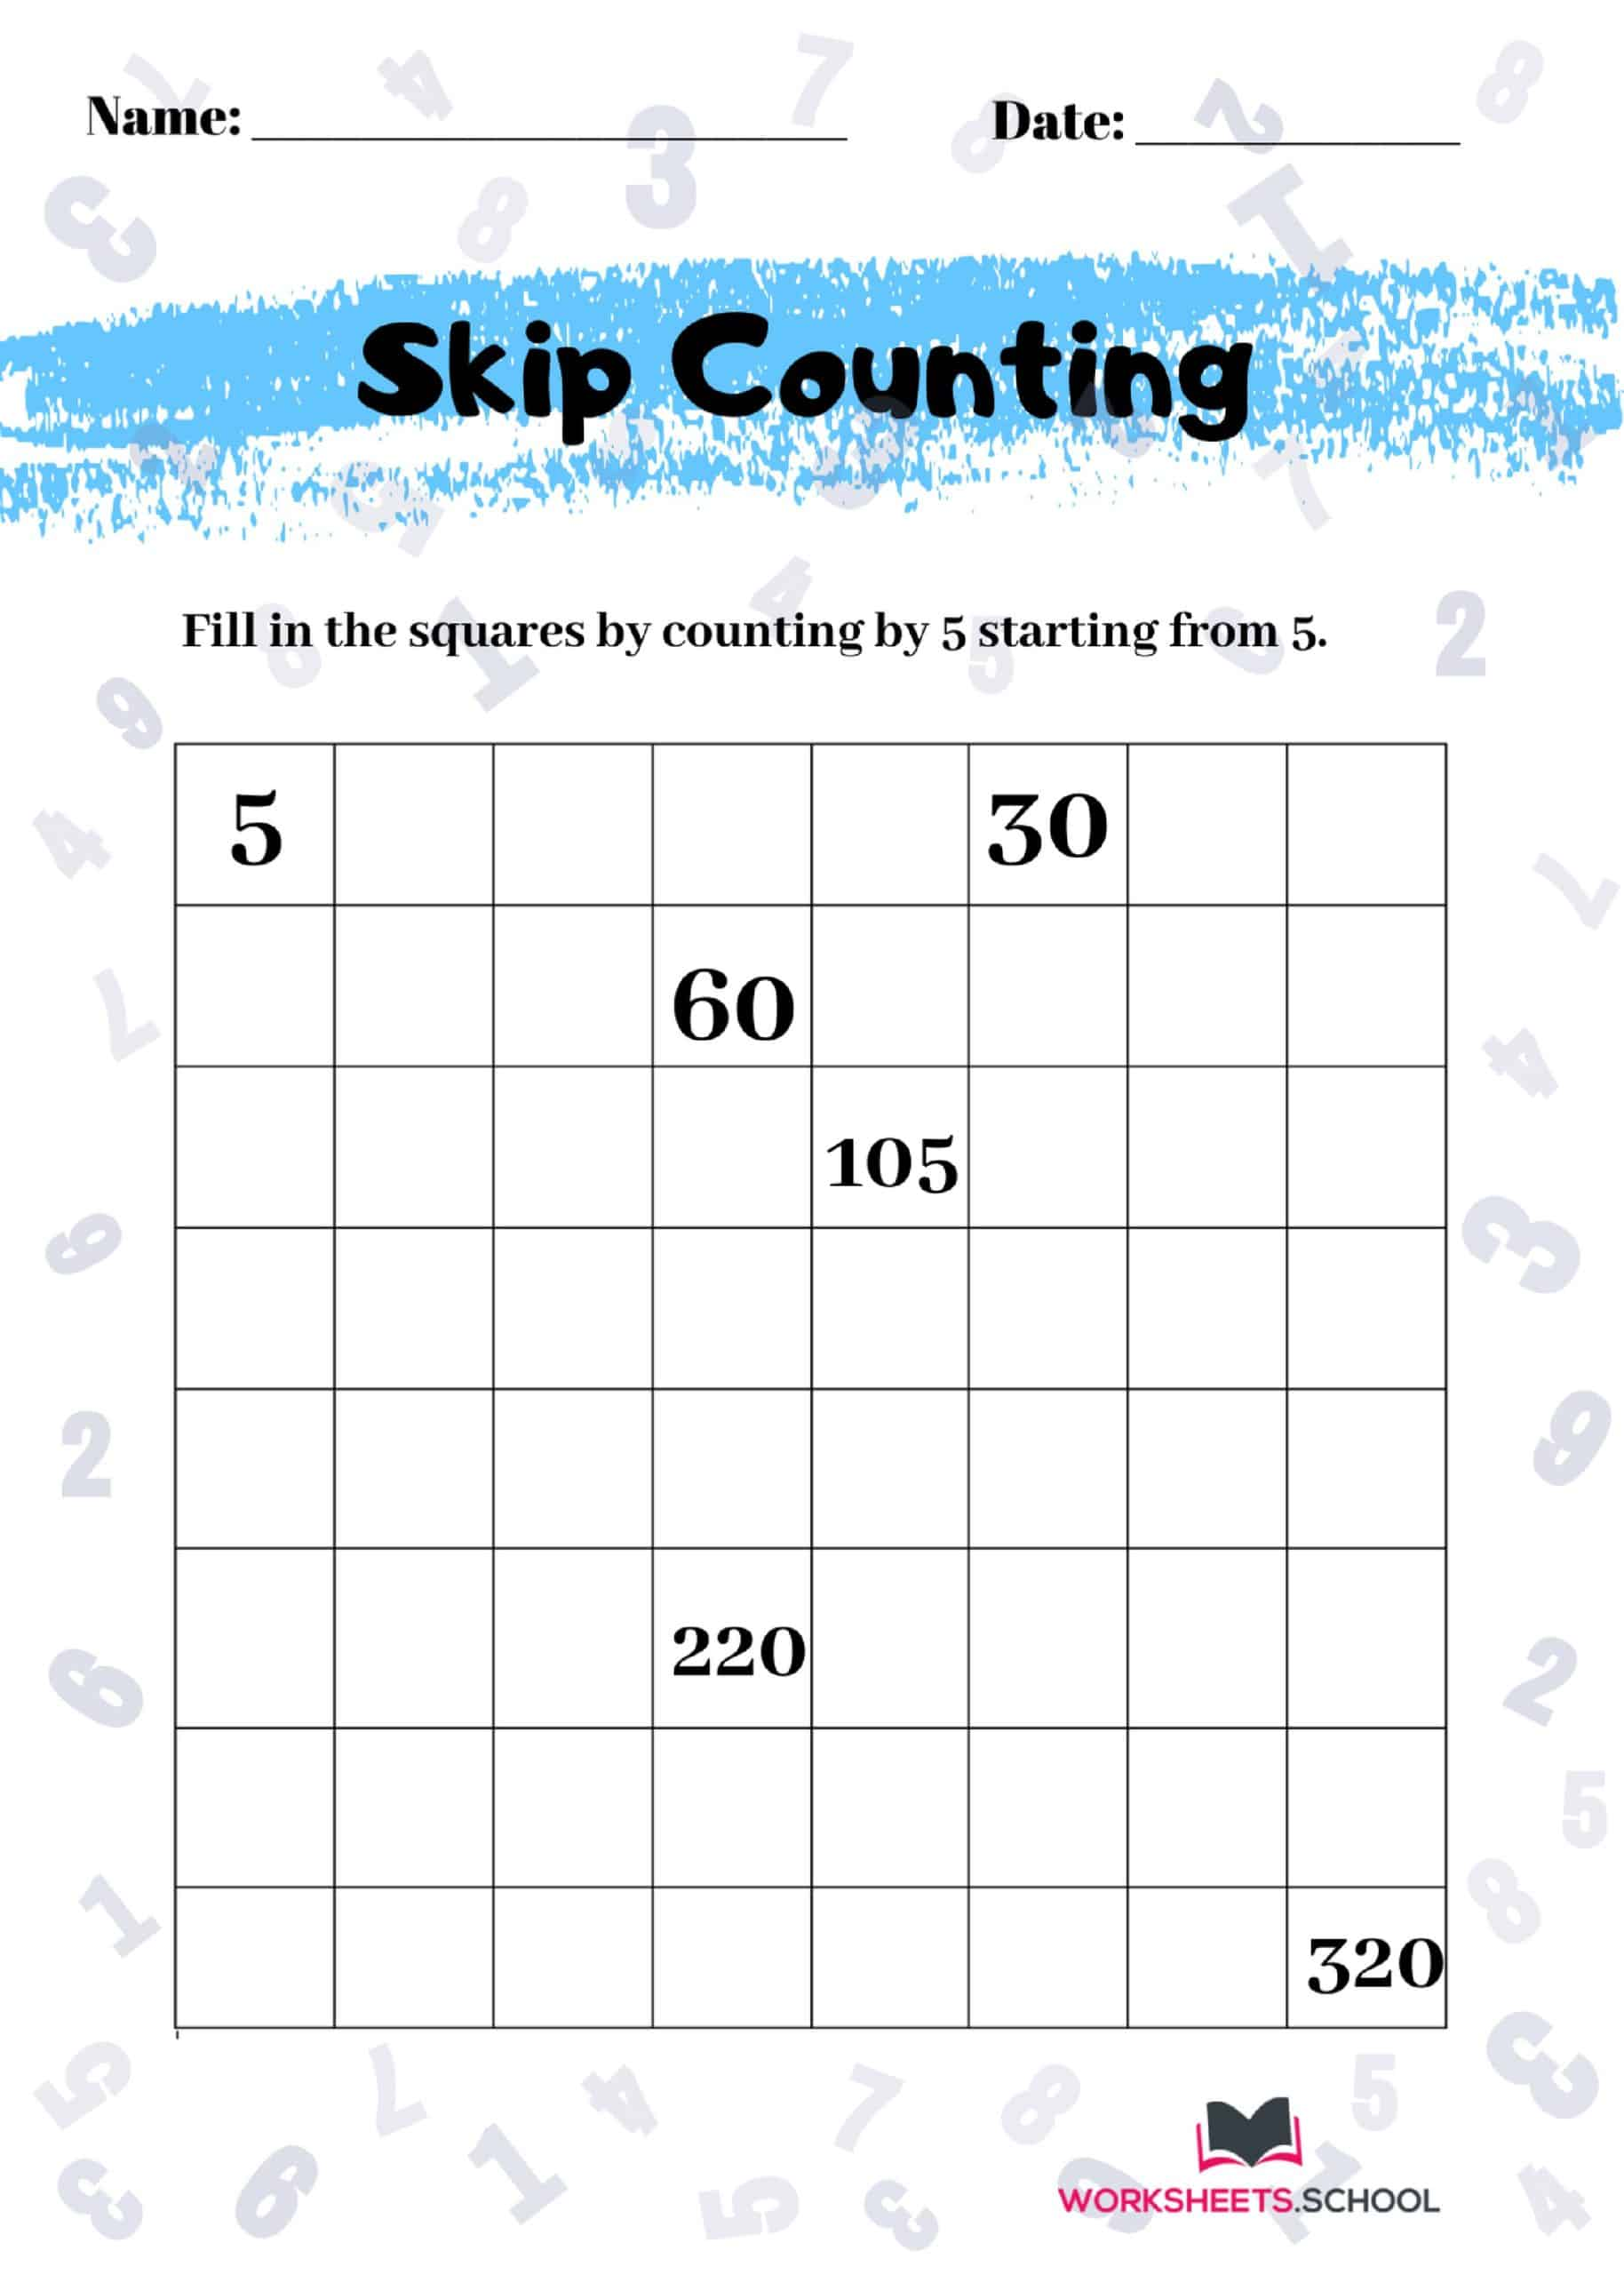 Skip Counting Worksheet by 5